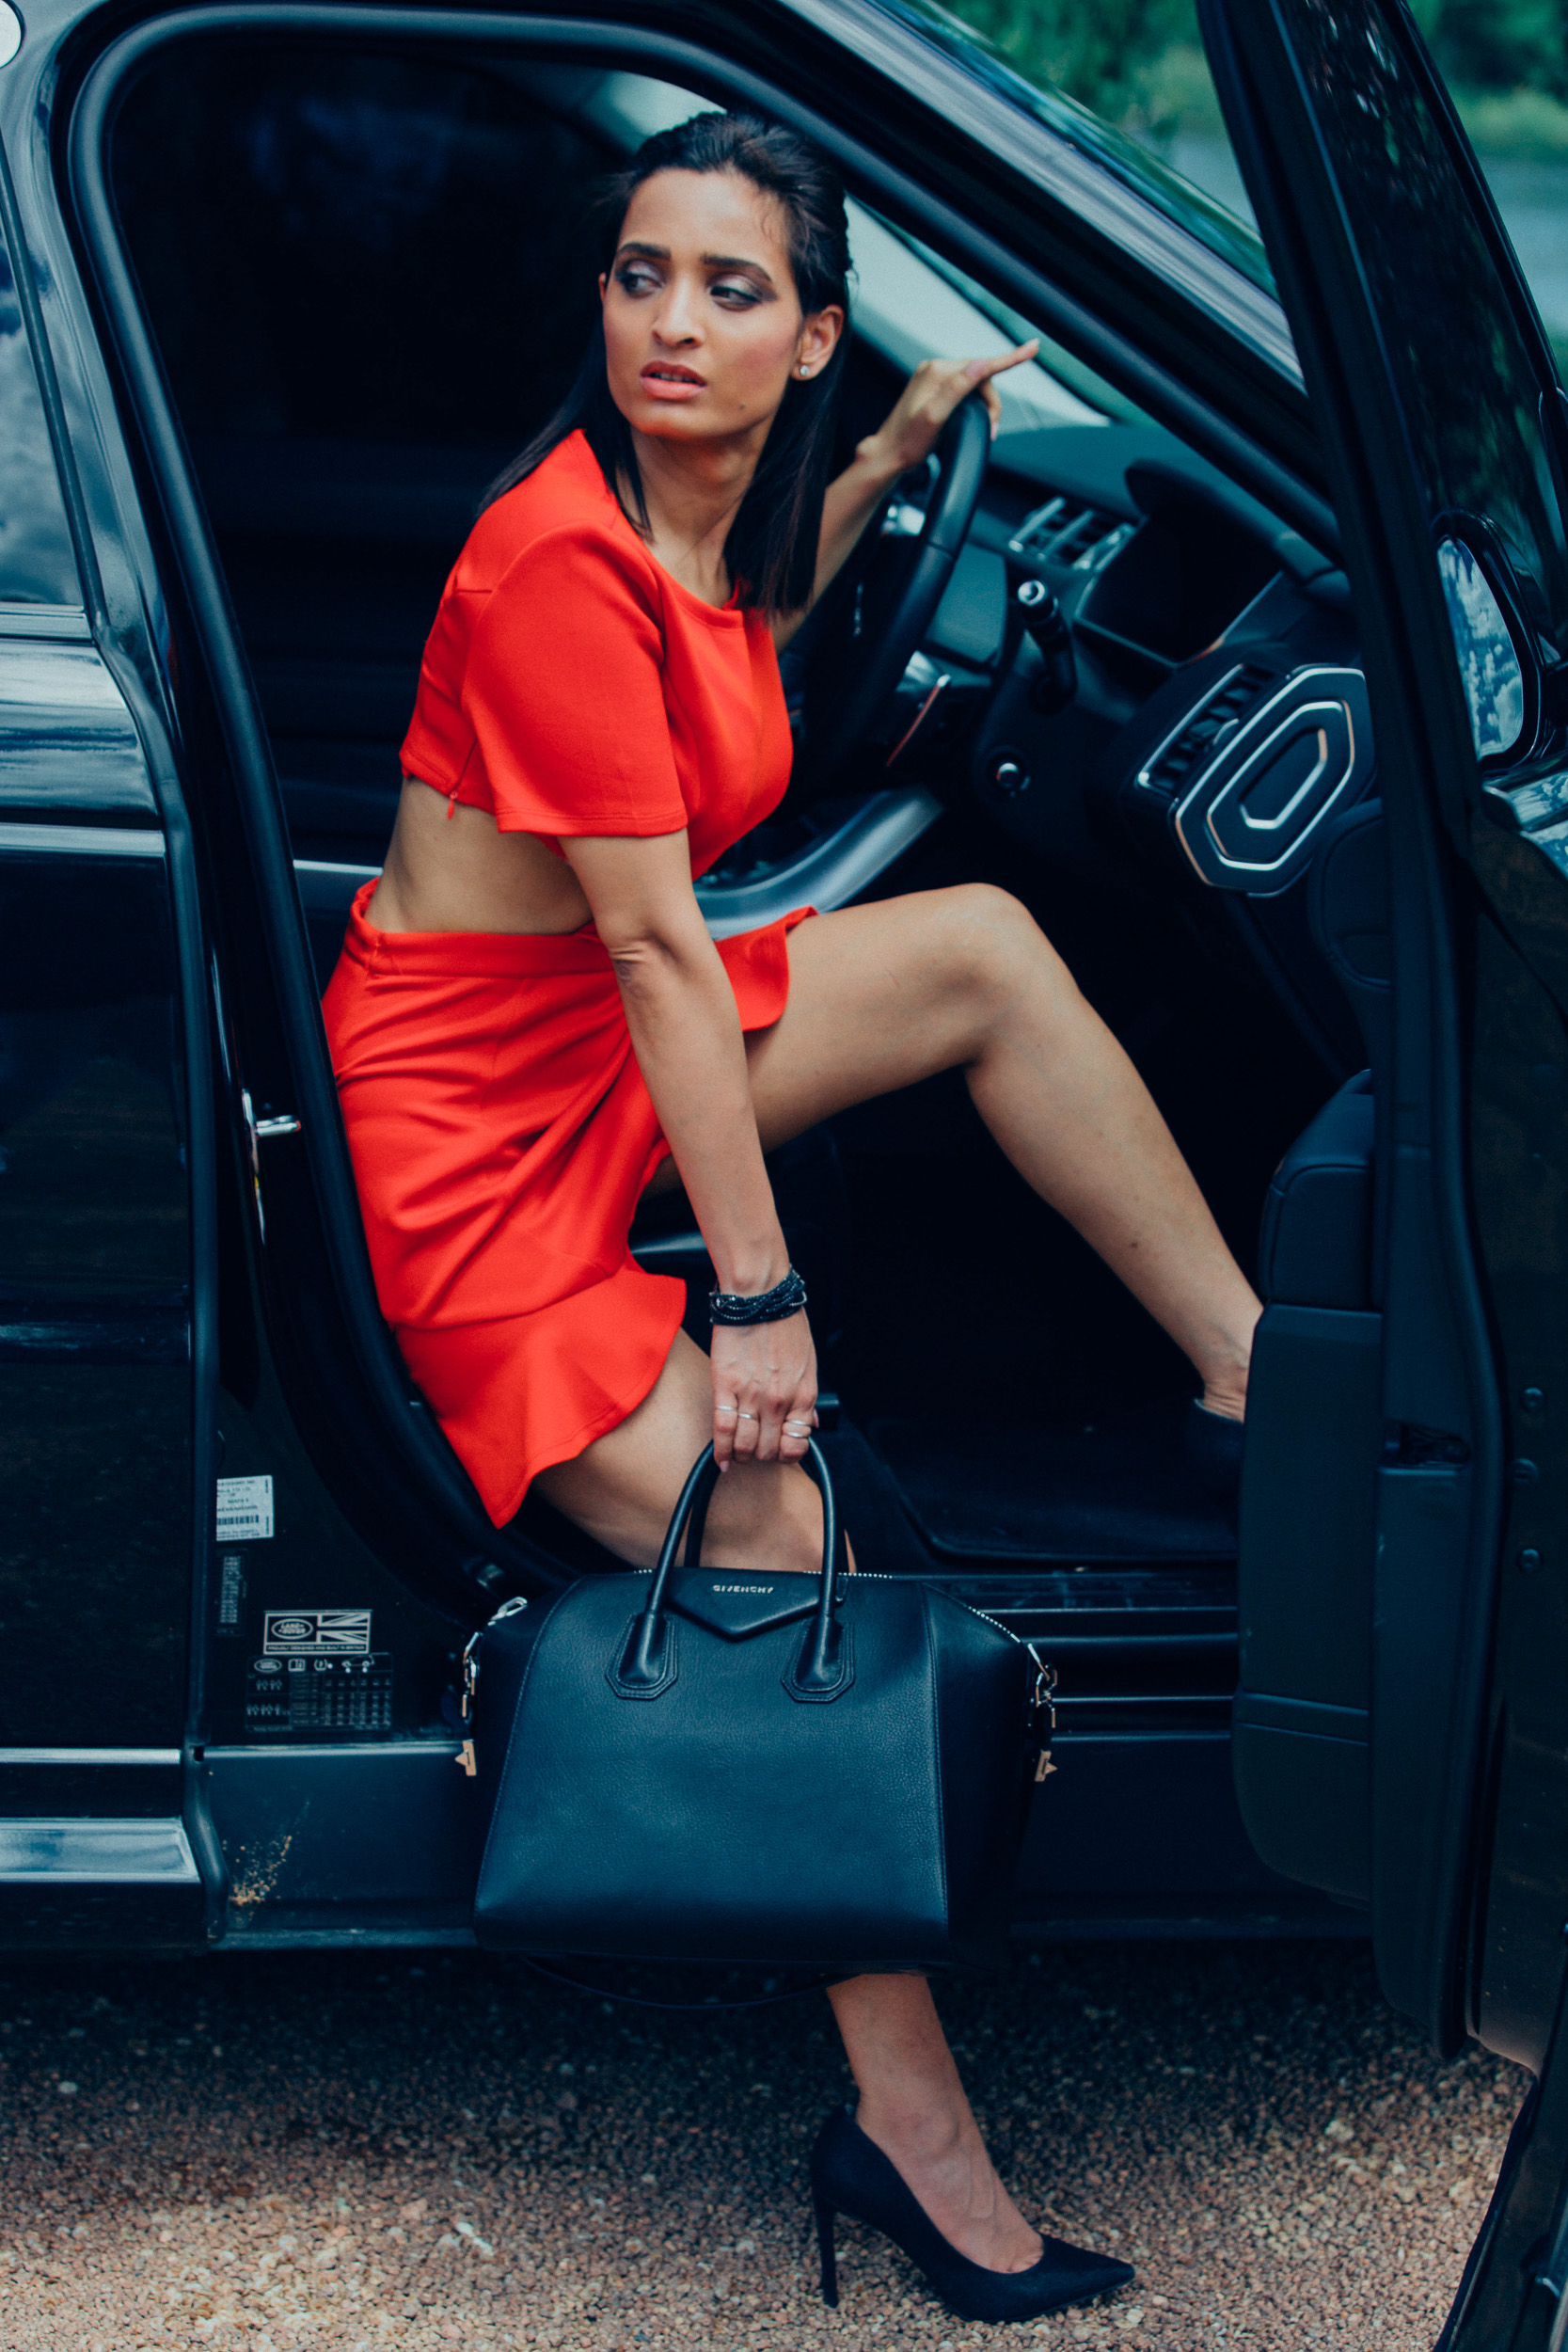 Girl wearing red dress holding a Givenchy purse posing with a land rover car